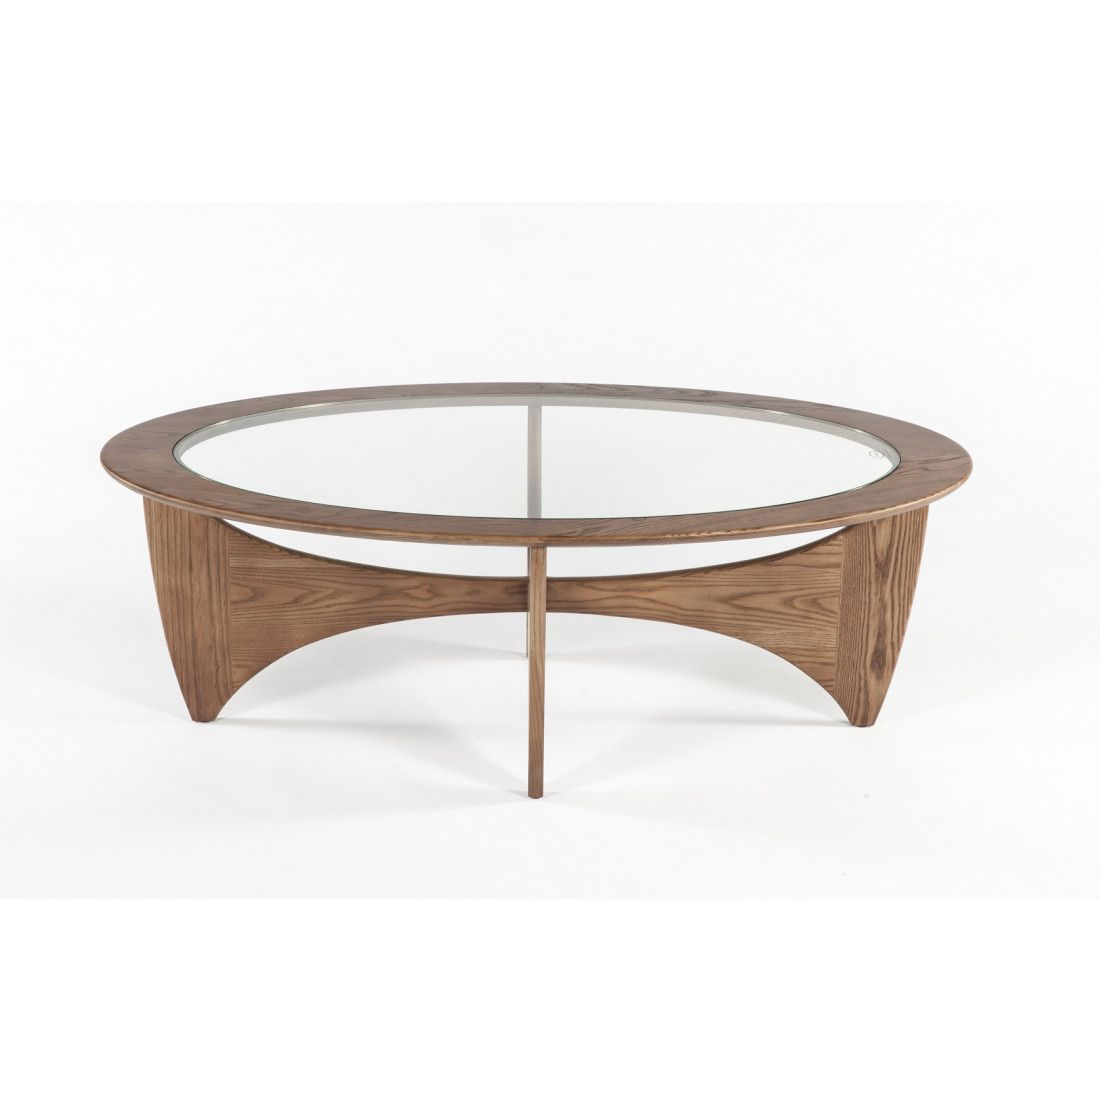 Adair Cocktail Table Coffee Table Mid Century Modern Coffee Table Modern Coffee Tables [ 1100 x 1100 Pixel ]